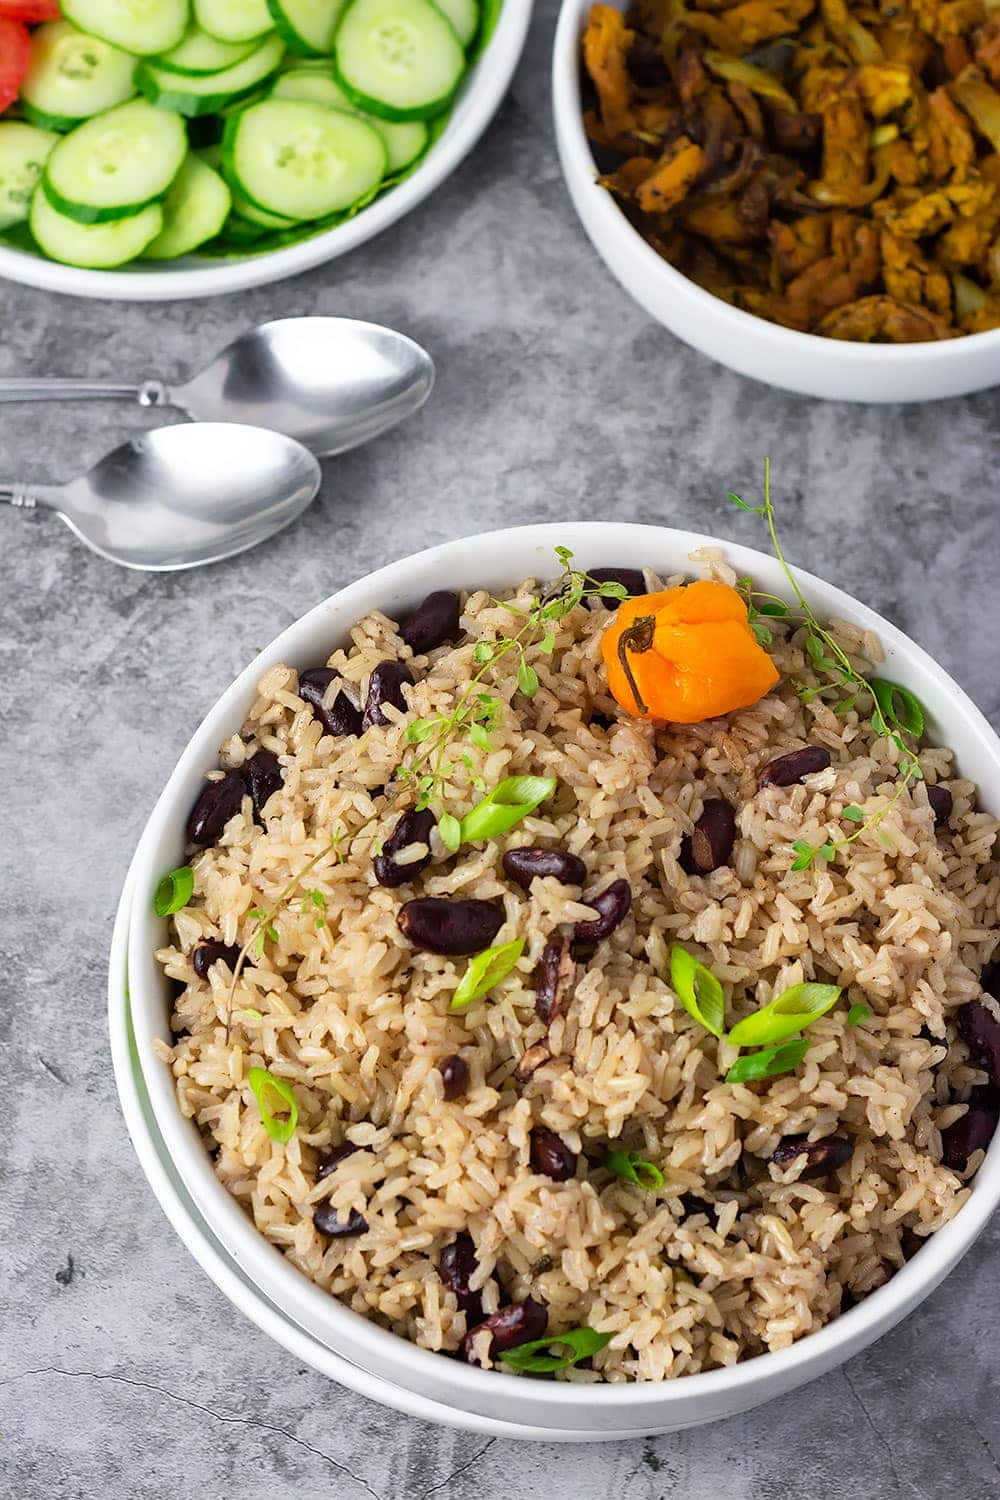 Jamaican Rice And Peas in a blue bowl